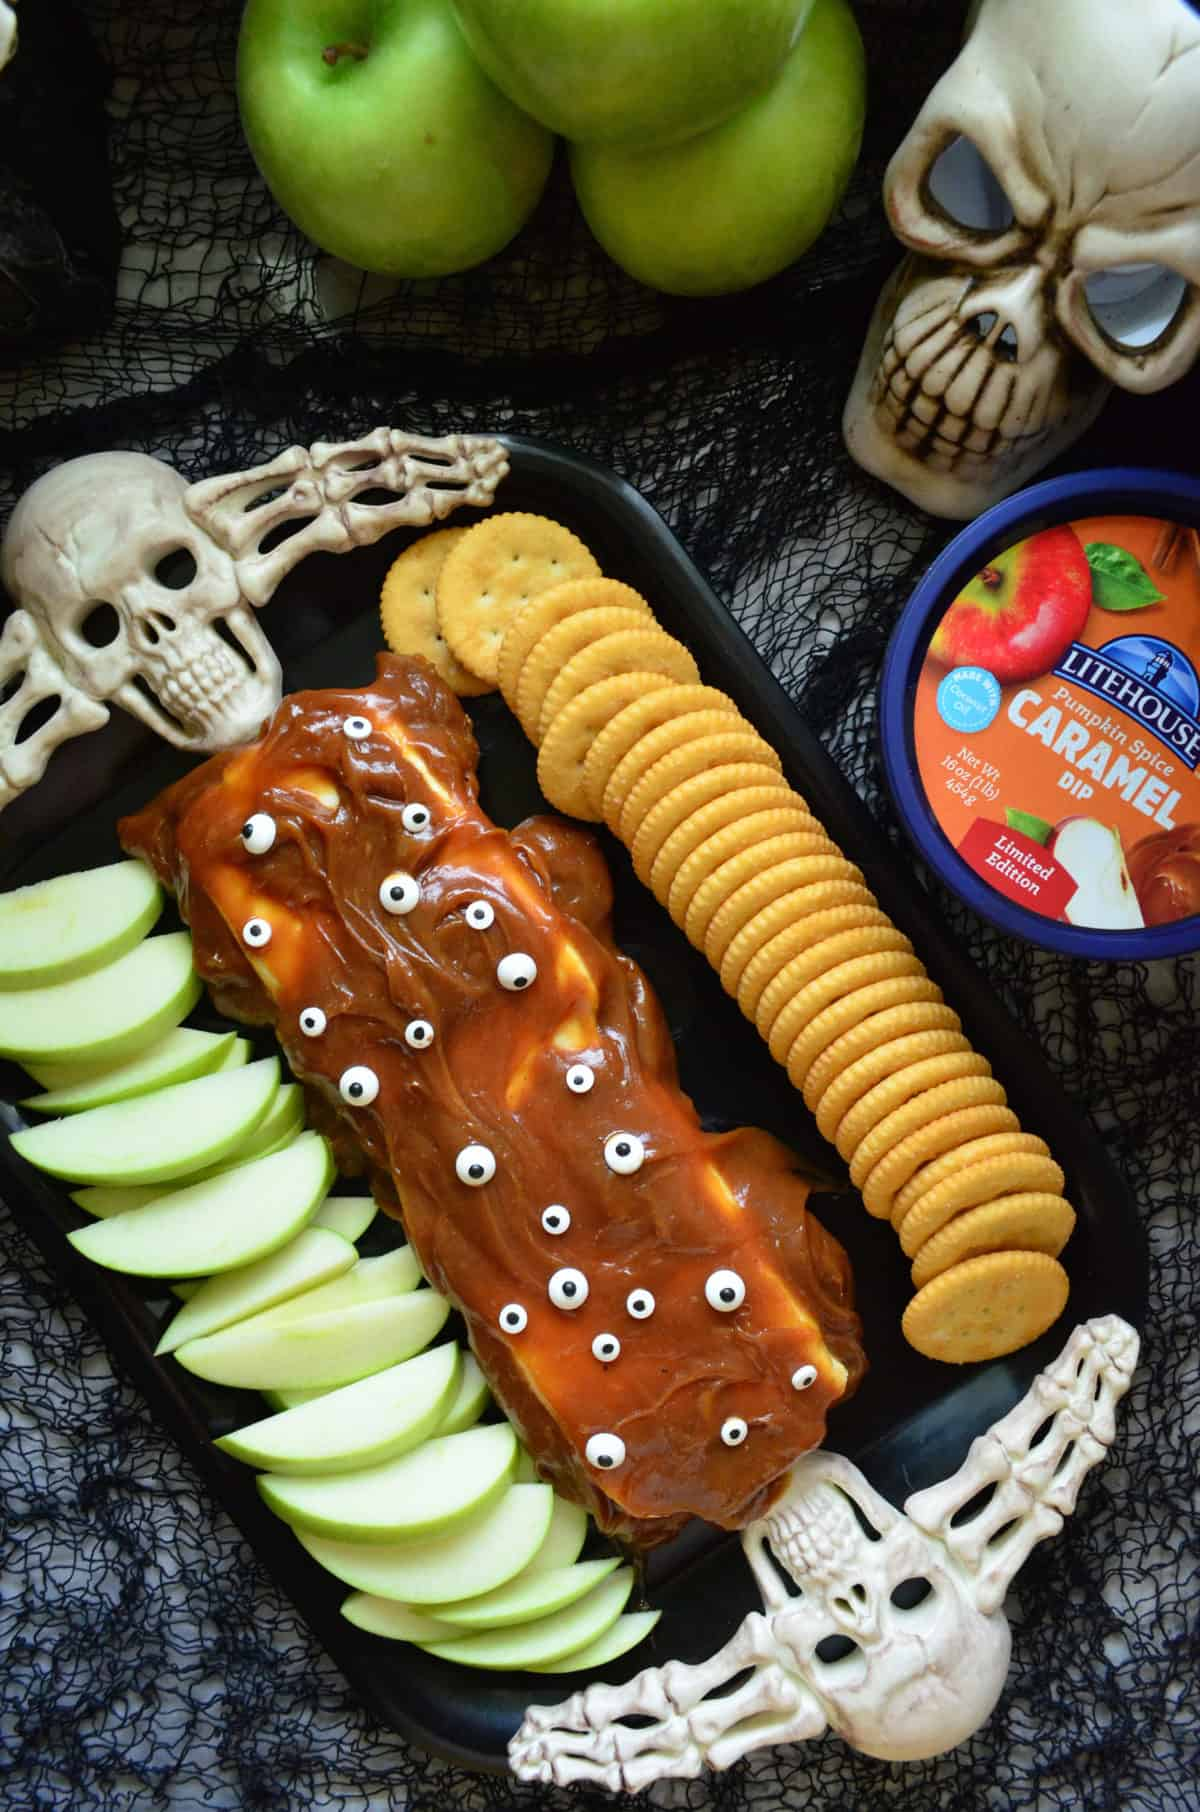 Monster Pumpkin Spice Caramel Cream Cheese Dip using Litehouse Caramel